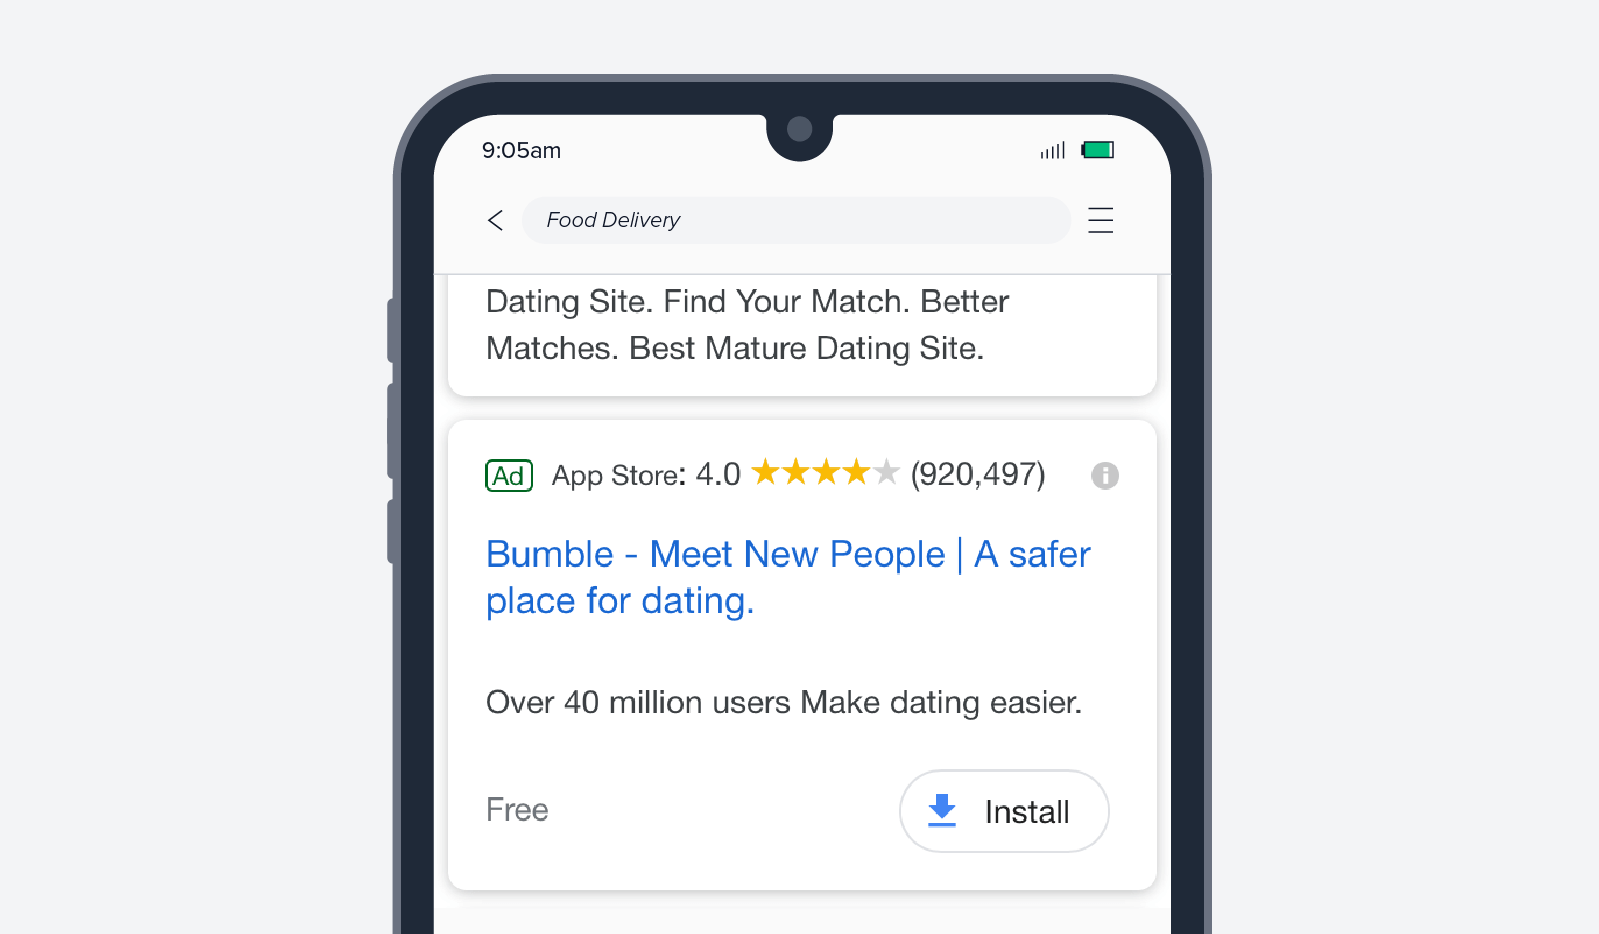 bumble app intall ad